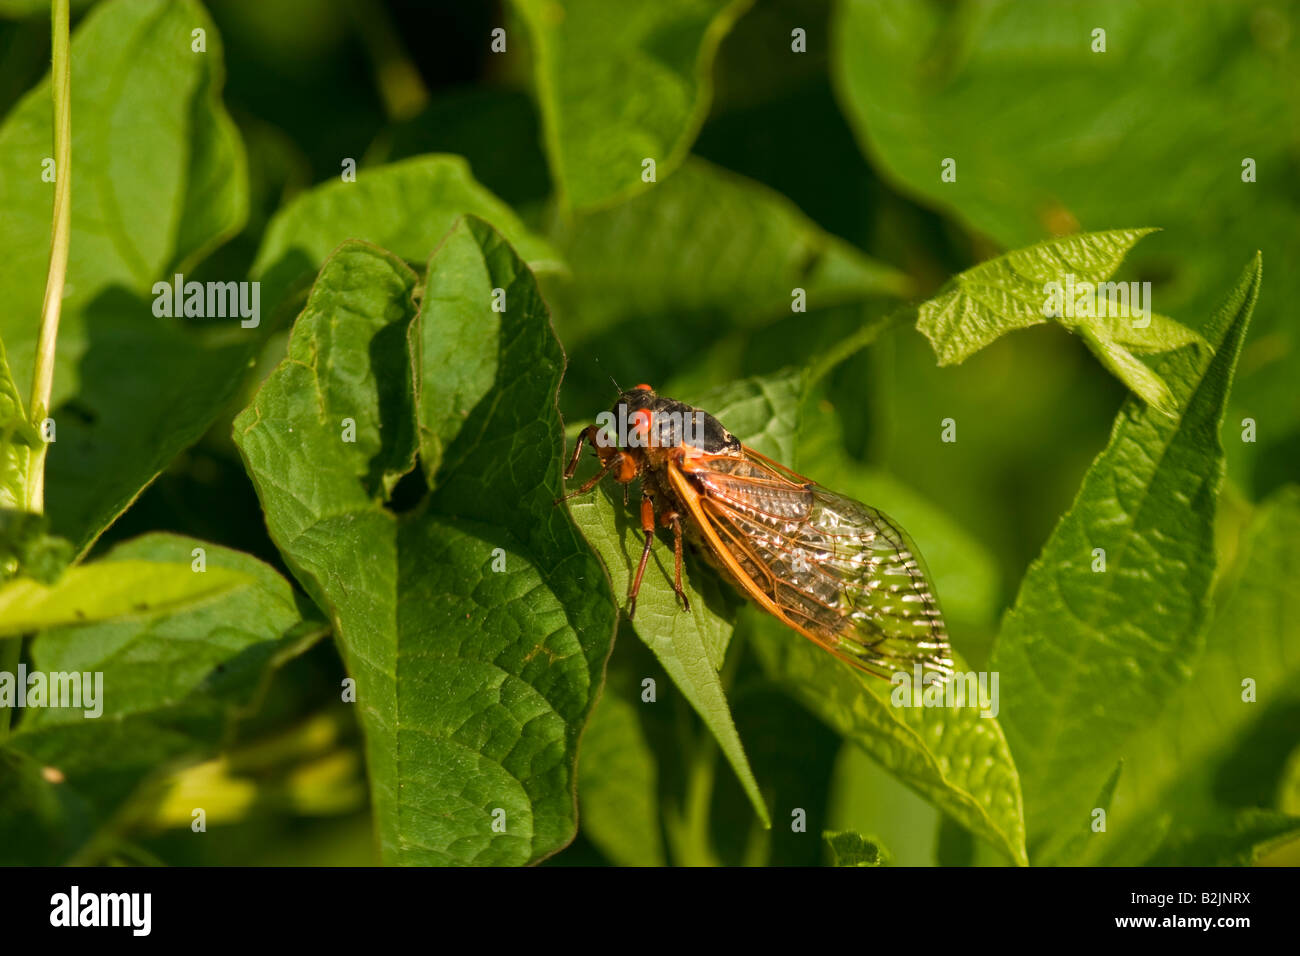 17 year periodical cicada (Magicicada spp) on green leaves - Stock Image